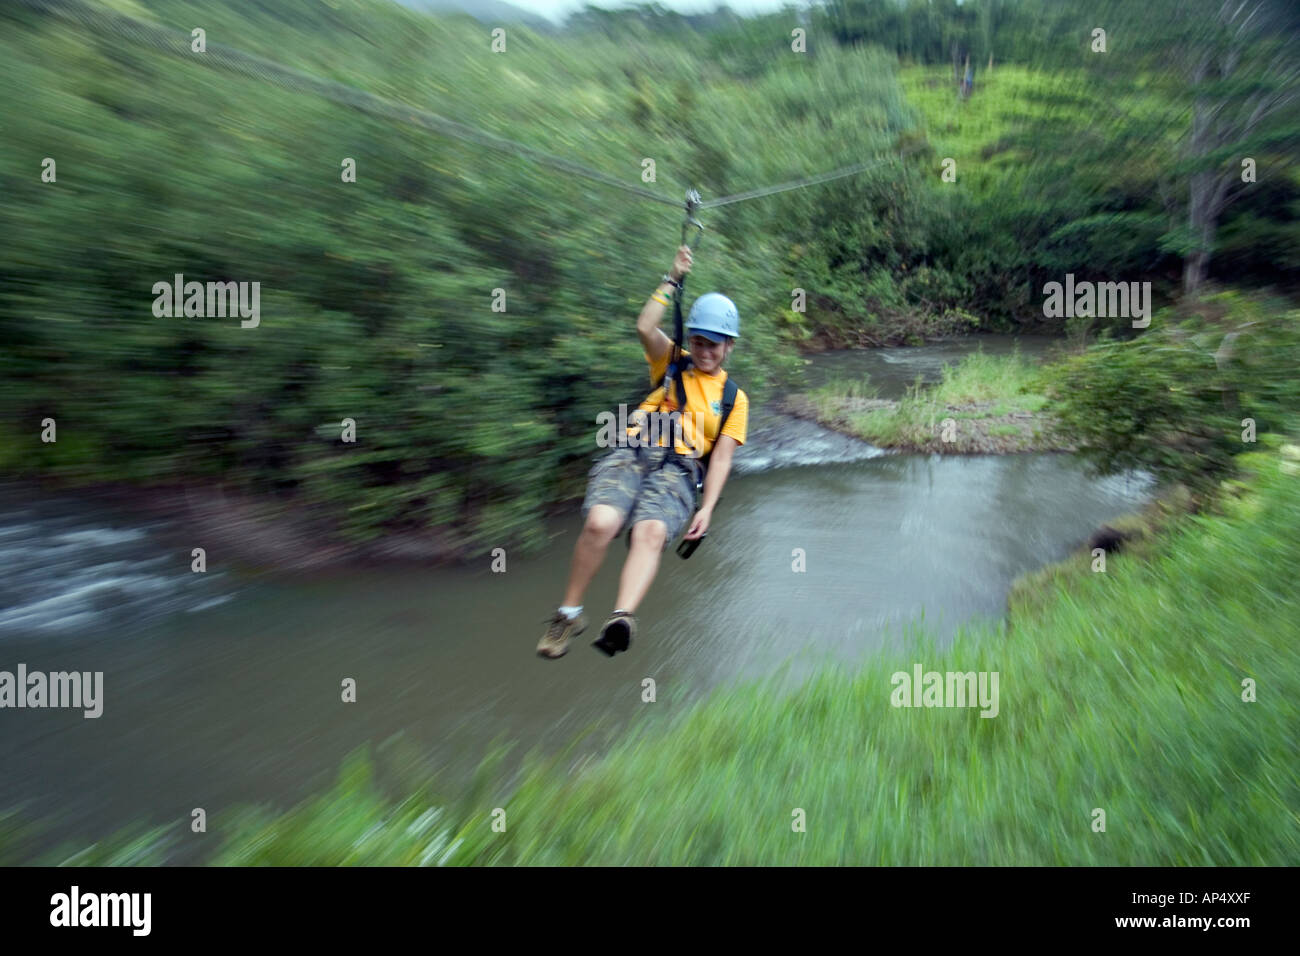 A popular tourist attraction on Kauai. This girl (MR) is on a valley zipline tour over a stream, Hawaii. - Stock Image